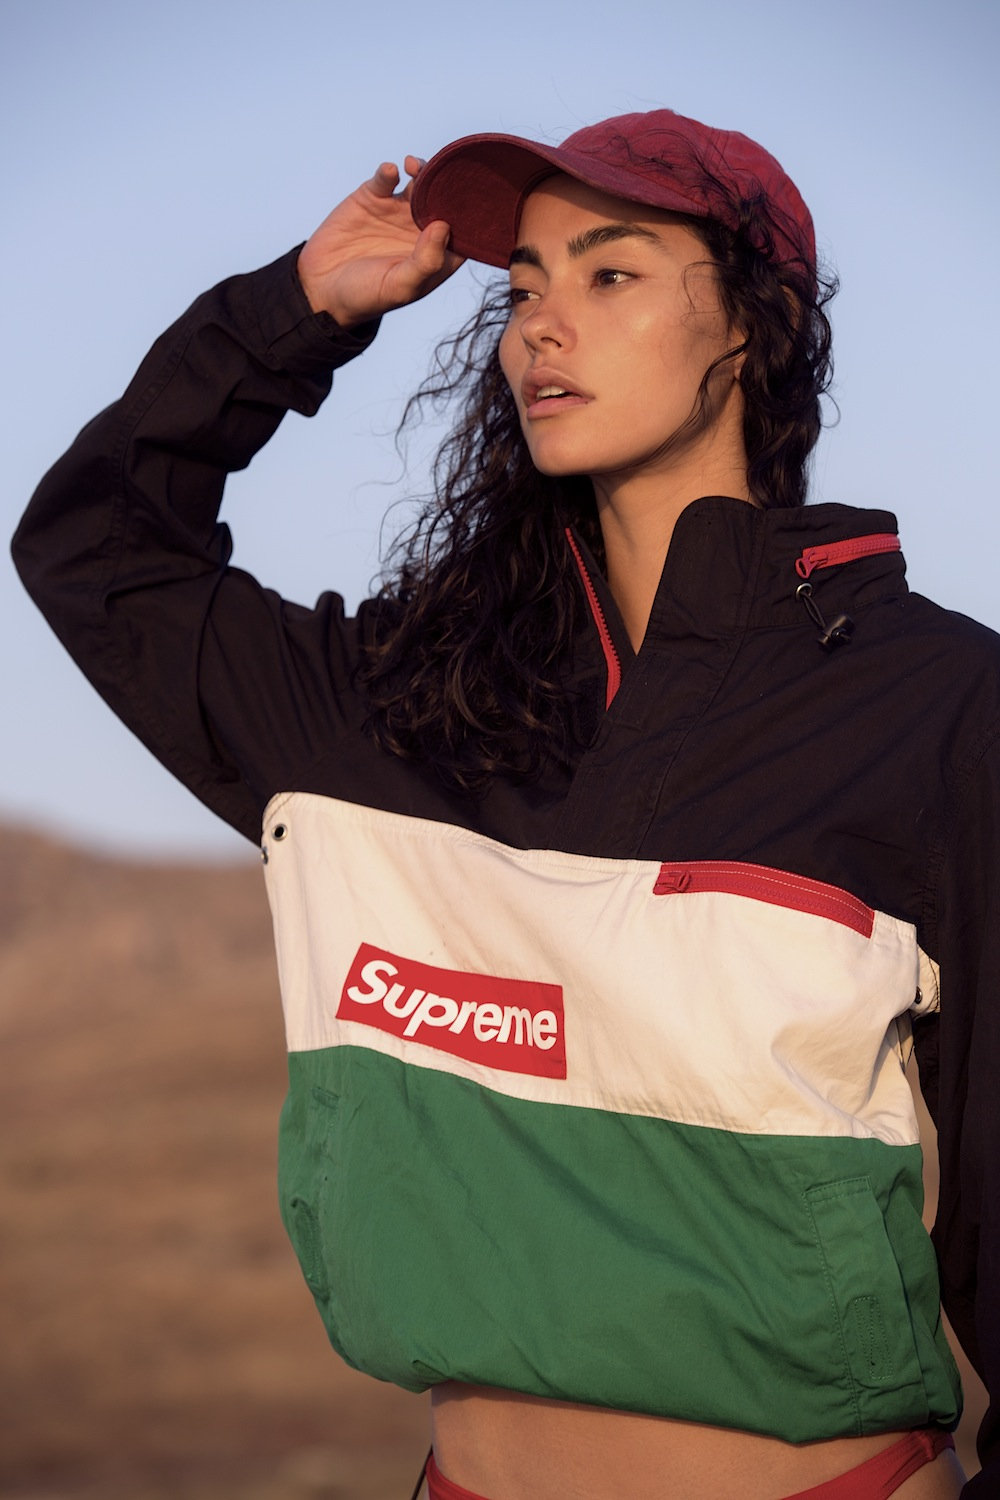 You searched for vintage supreme - SWEAT THE STYLE